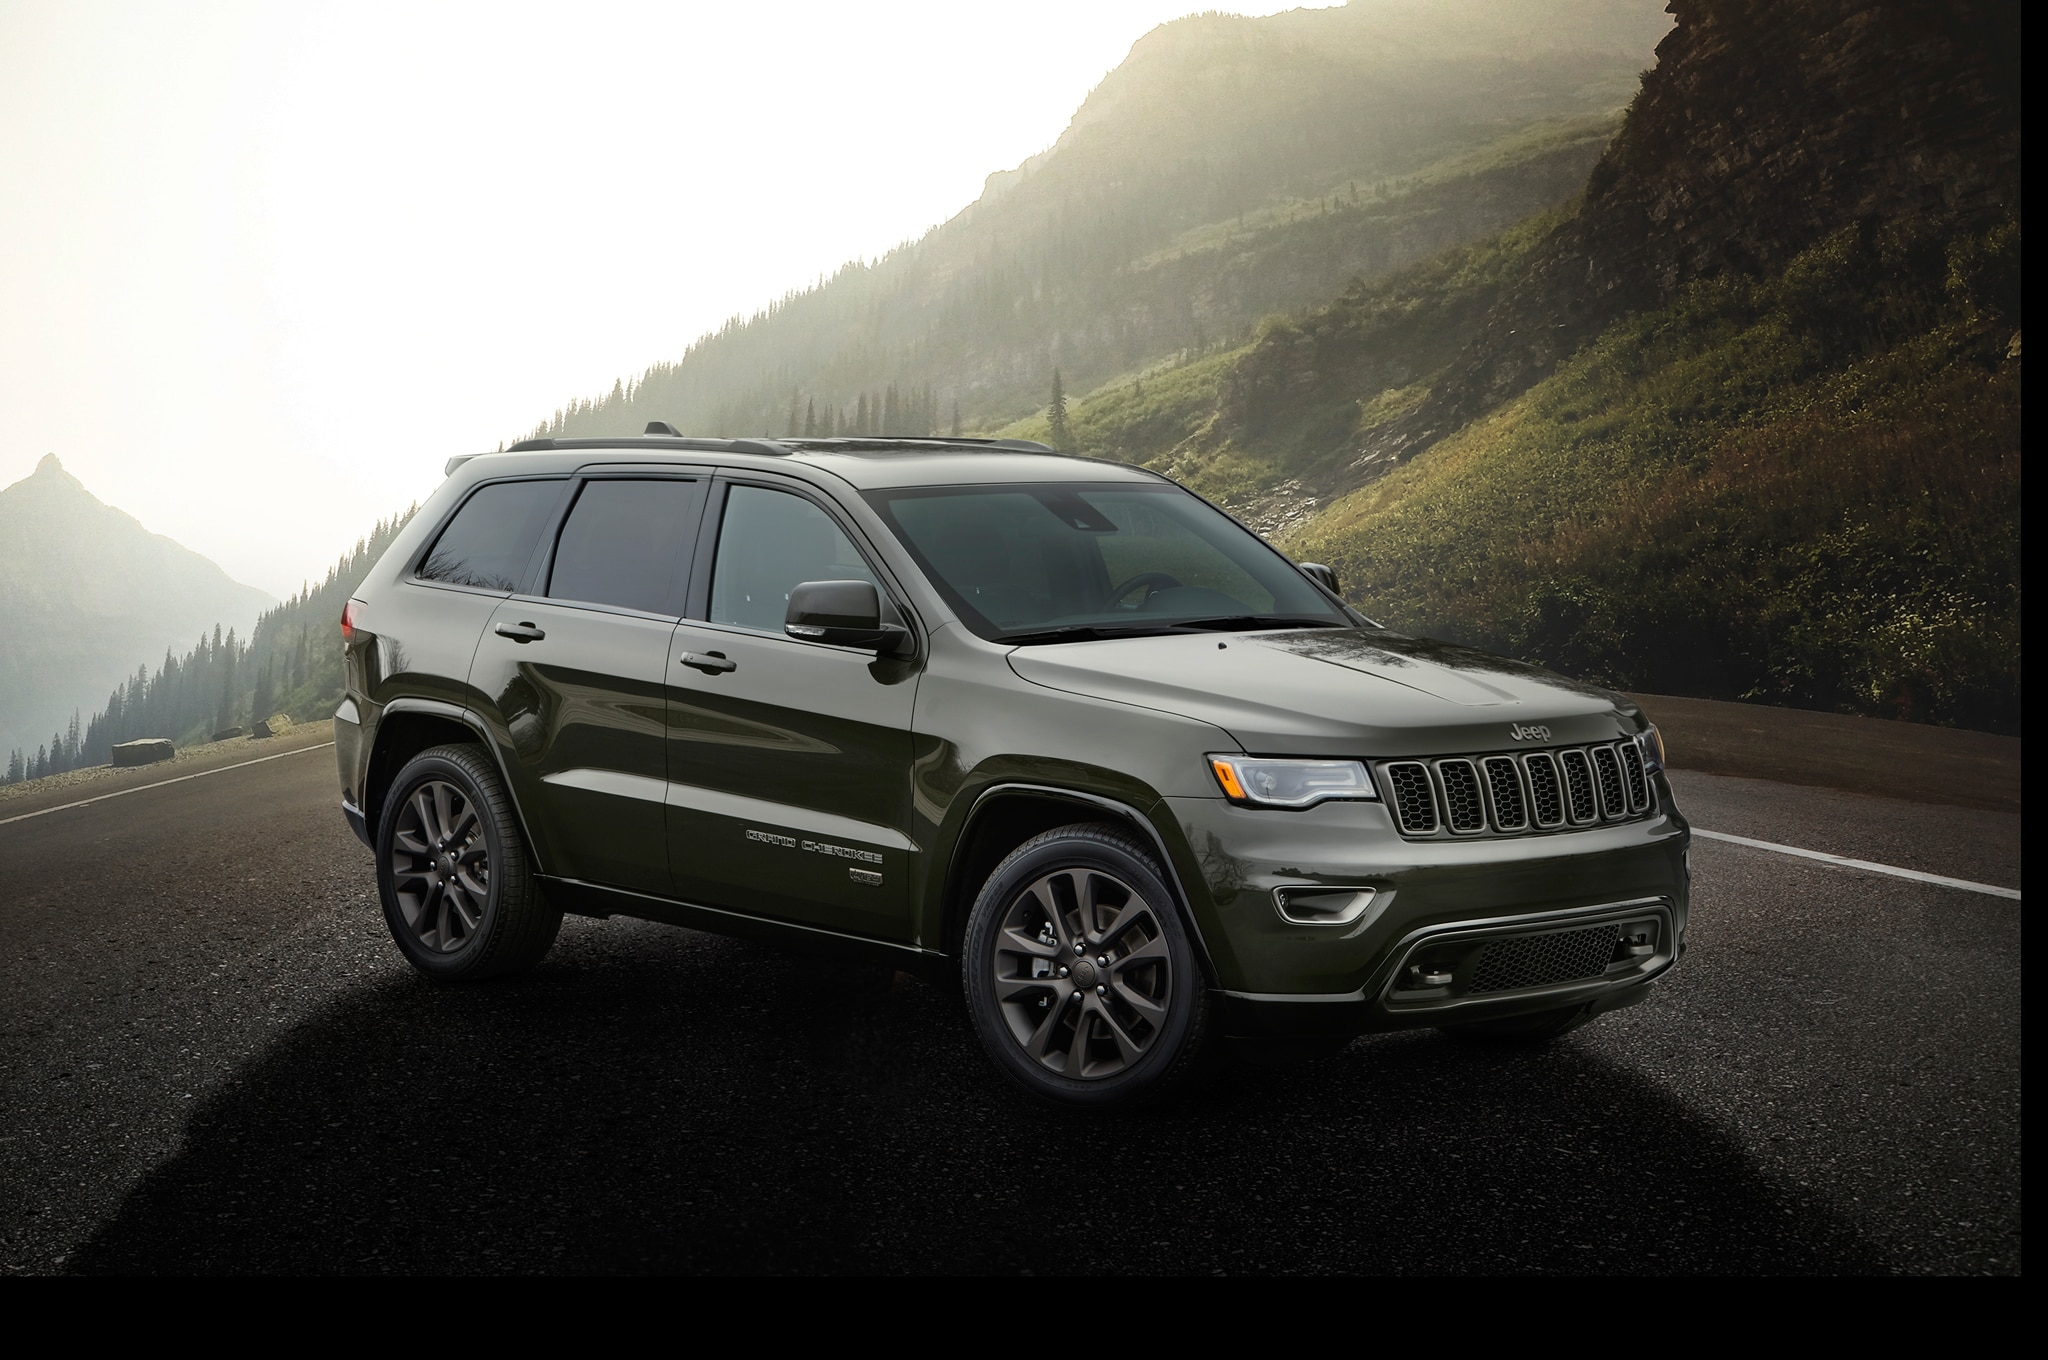 cherokee jeep grand engine start stop mpg improves adds 75th anniversary edition